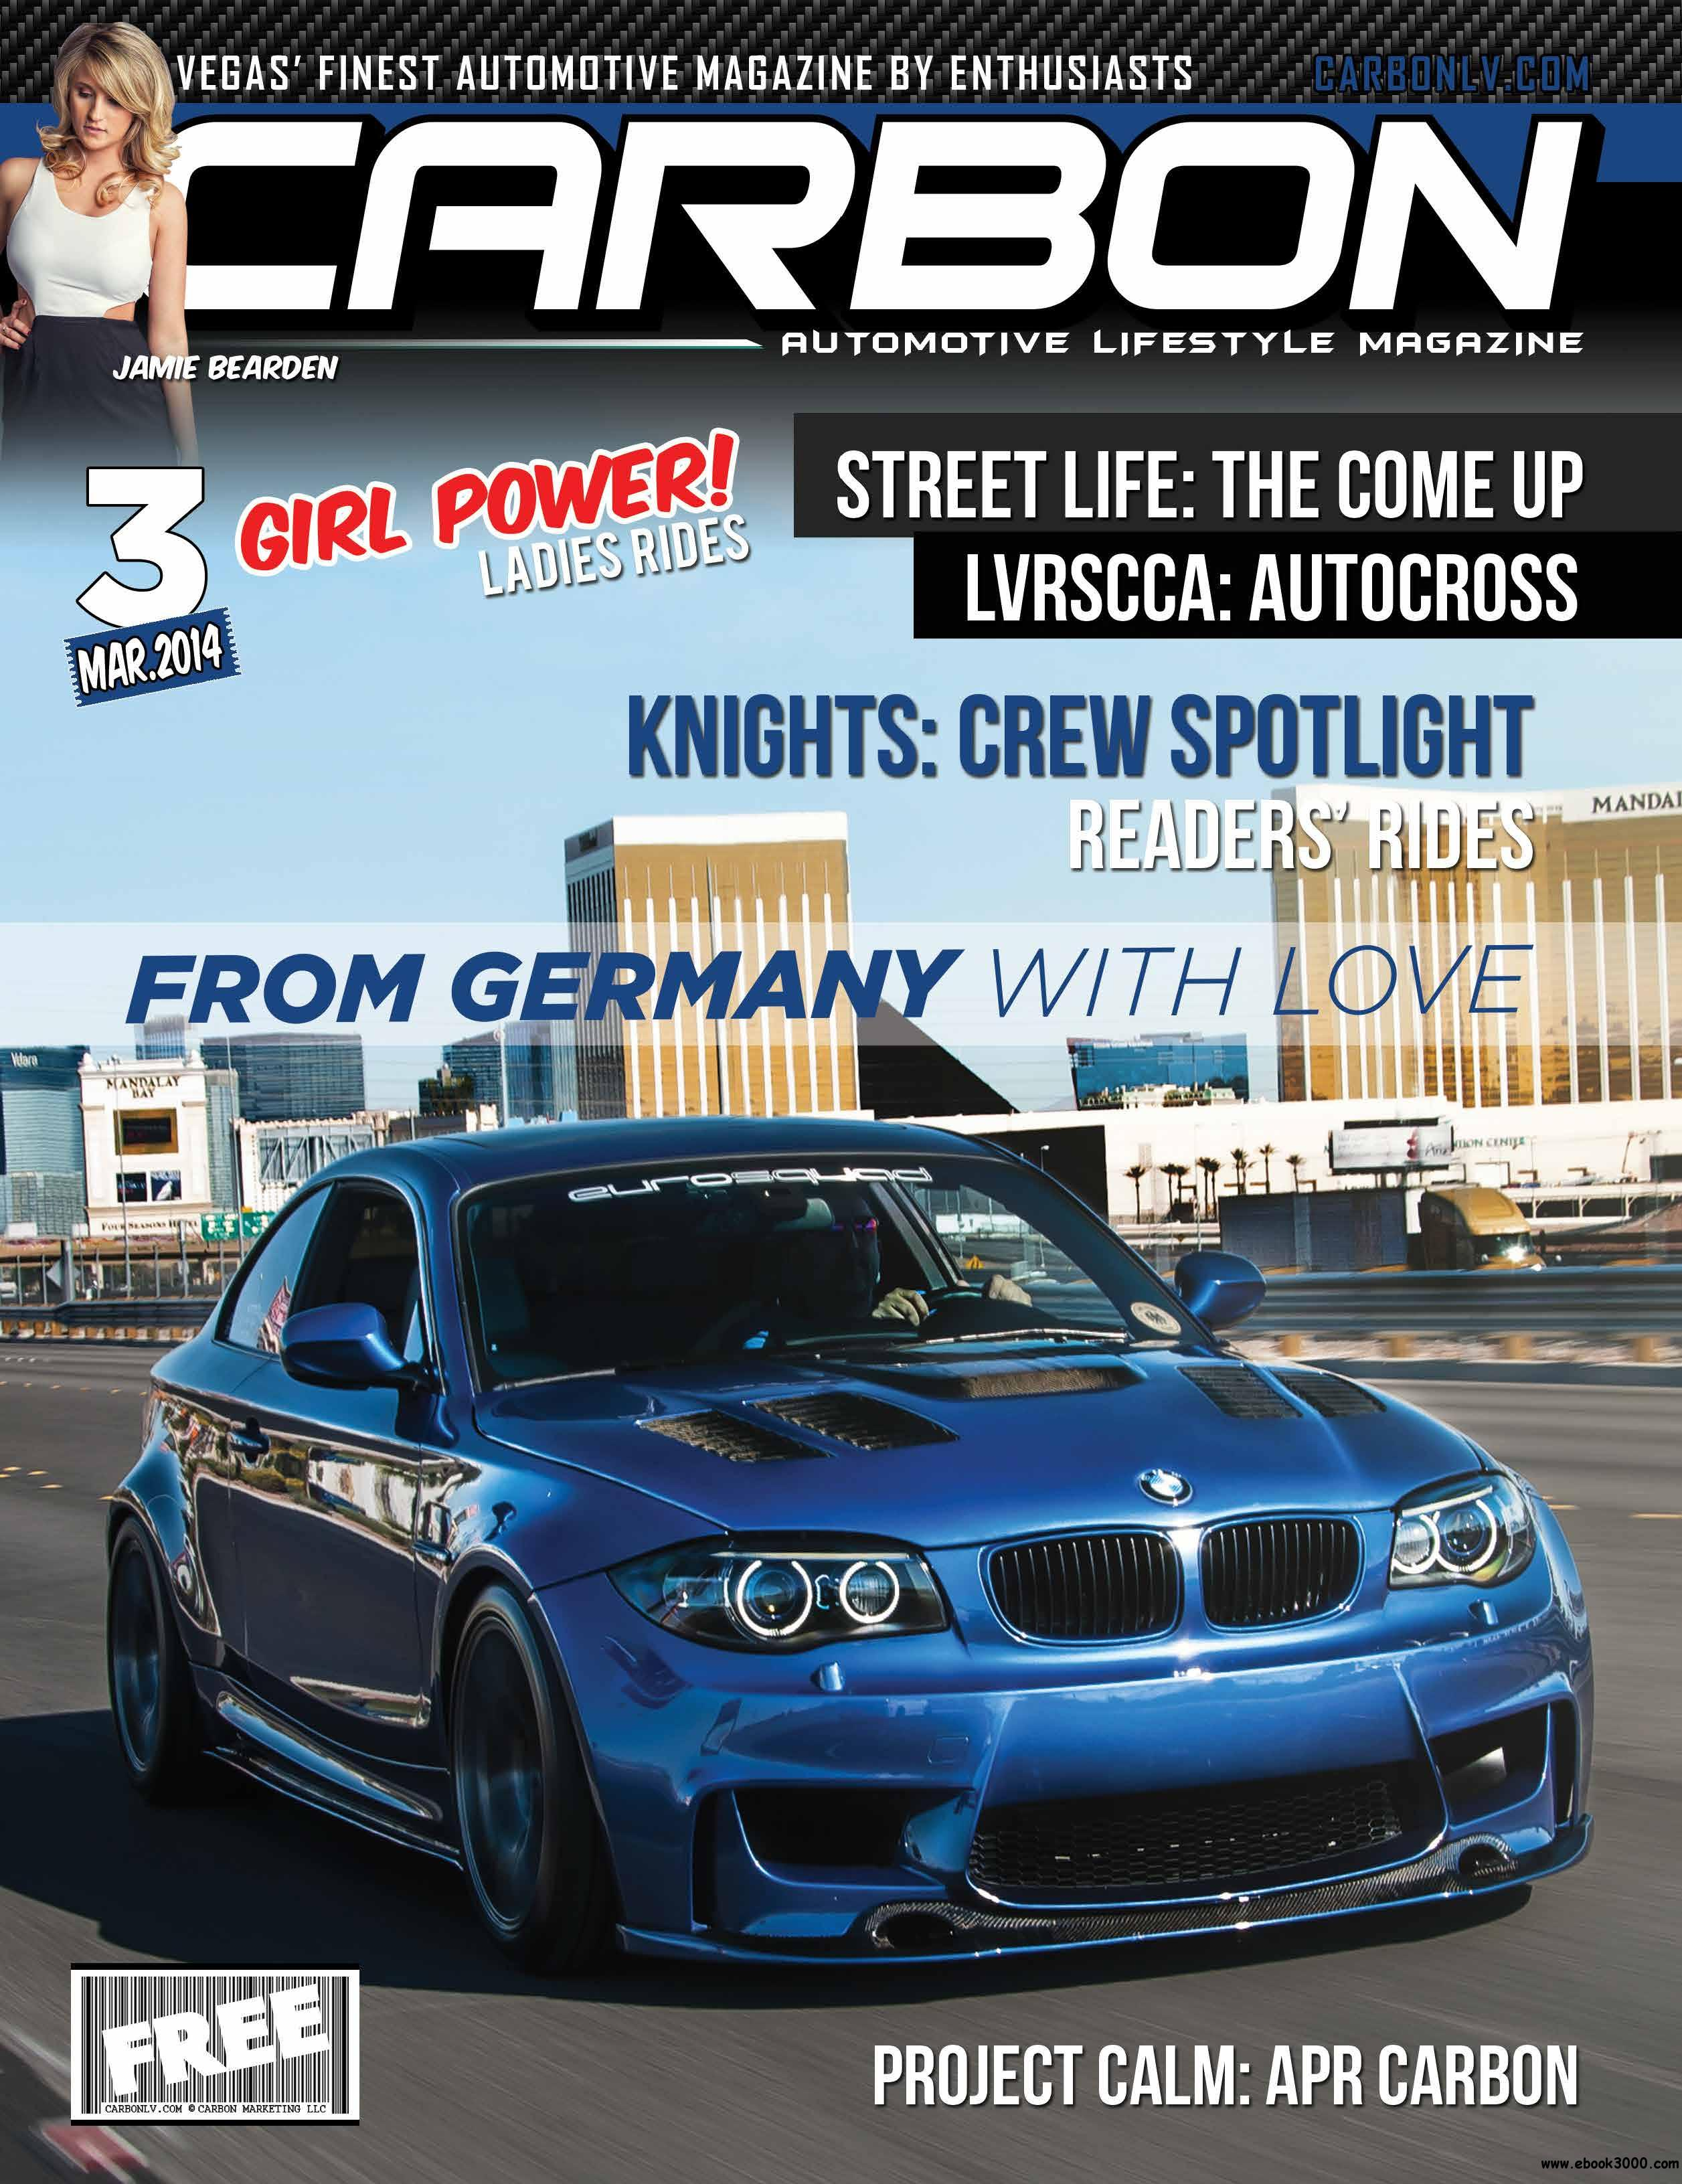 Carbon Automotive Lifestyle Magazine - March 2014 free download